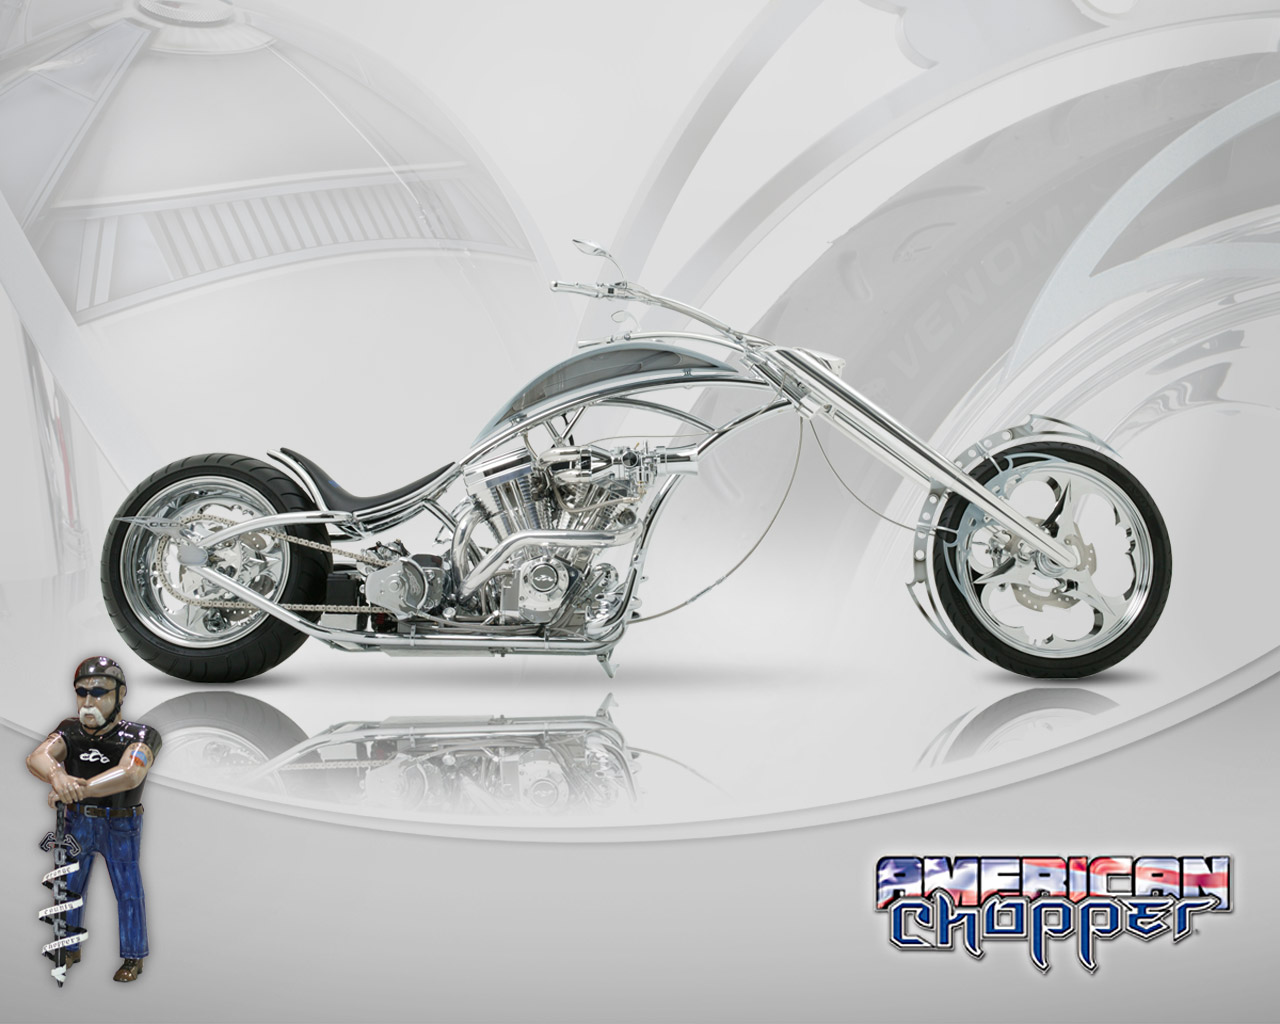 American chopper   Orange County Choppers Wallpaper 124421 1280x1024